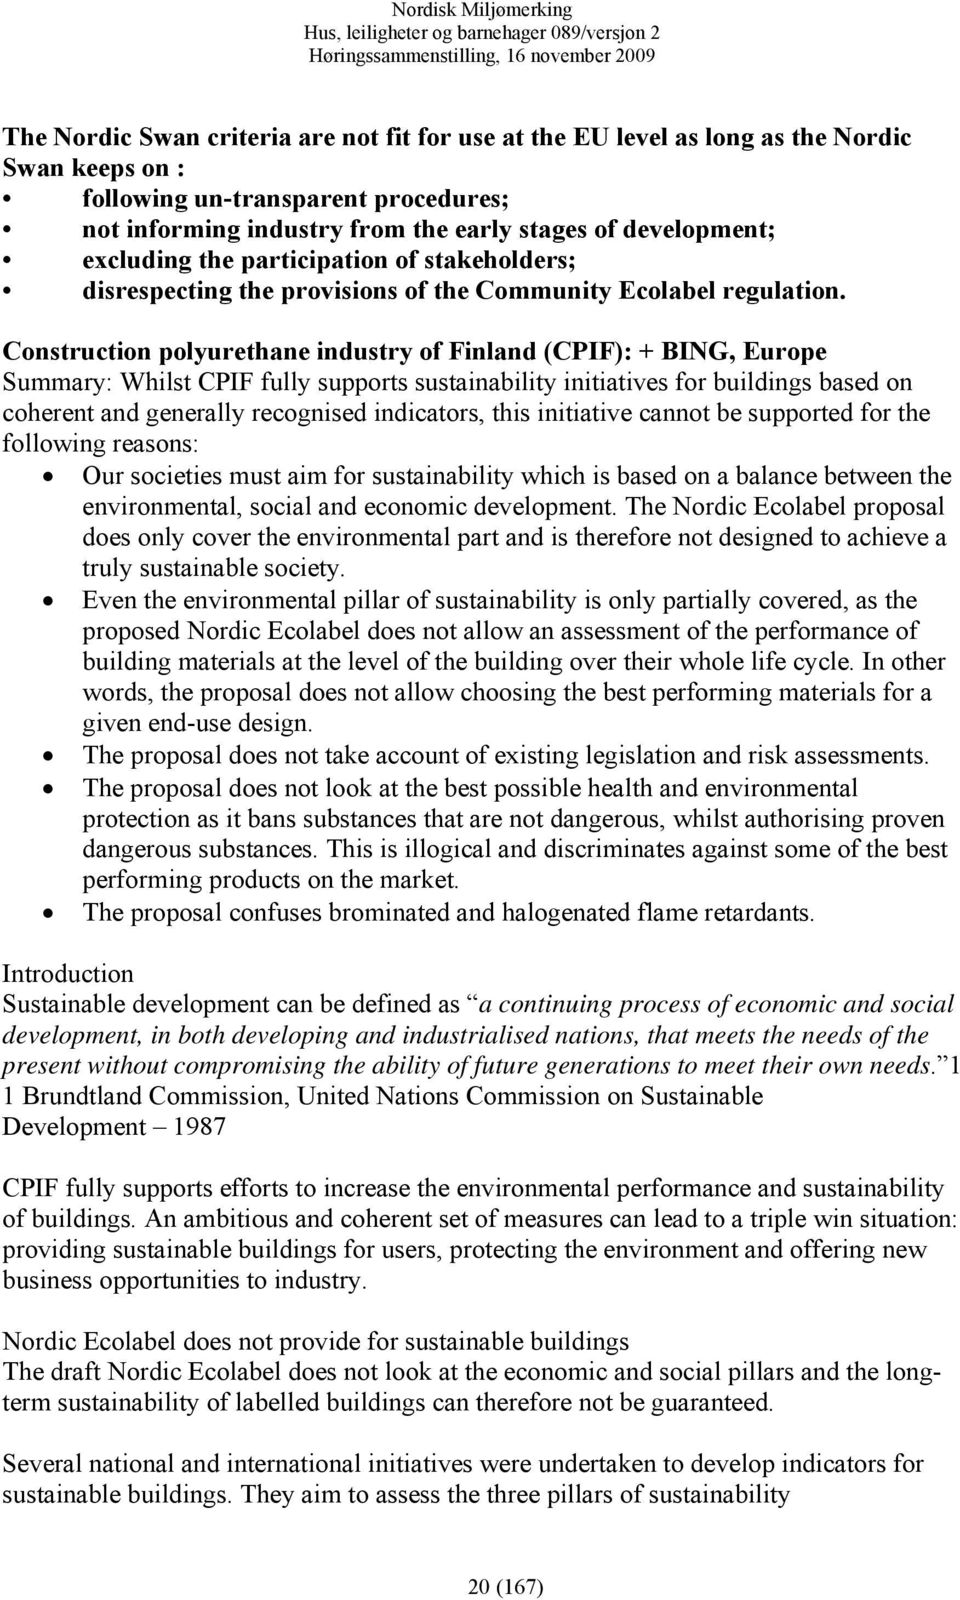 Construction polyurethane industry of Finland (CPIF): + BING, Europe Summary: Whilst CPIF fully supports sustainability initiatives for buildings based on coherent and generally recognised